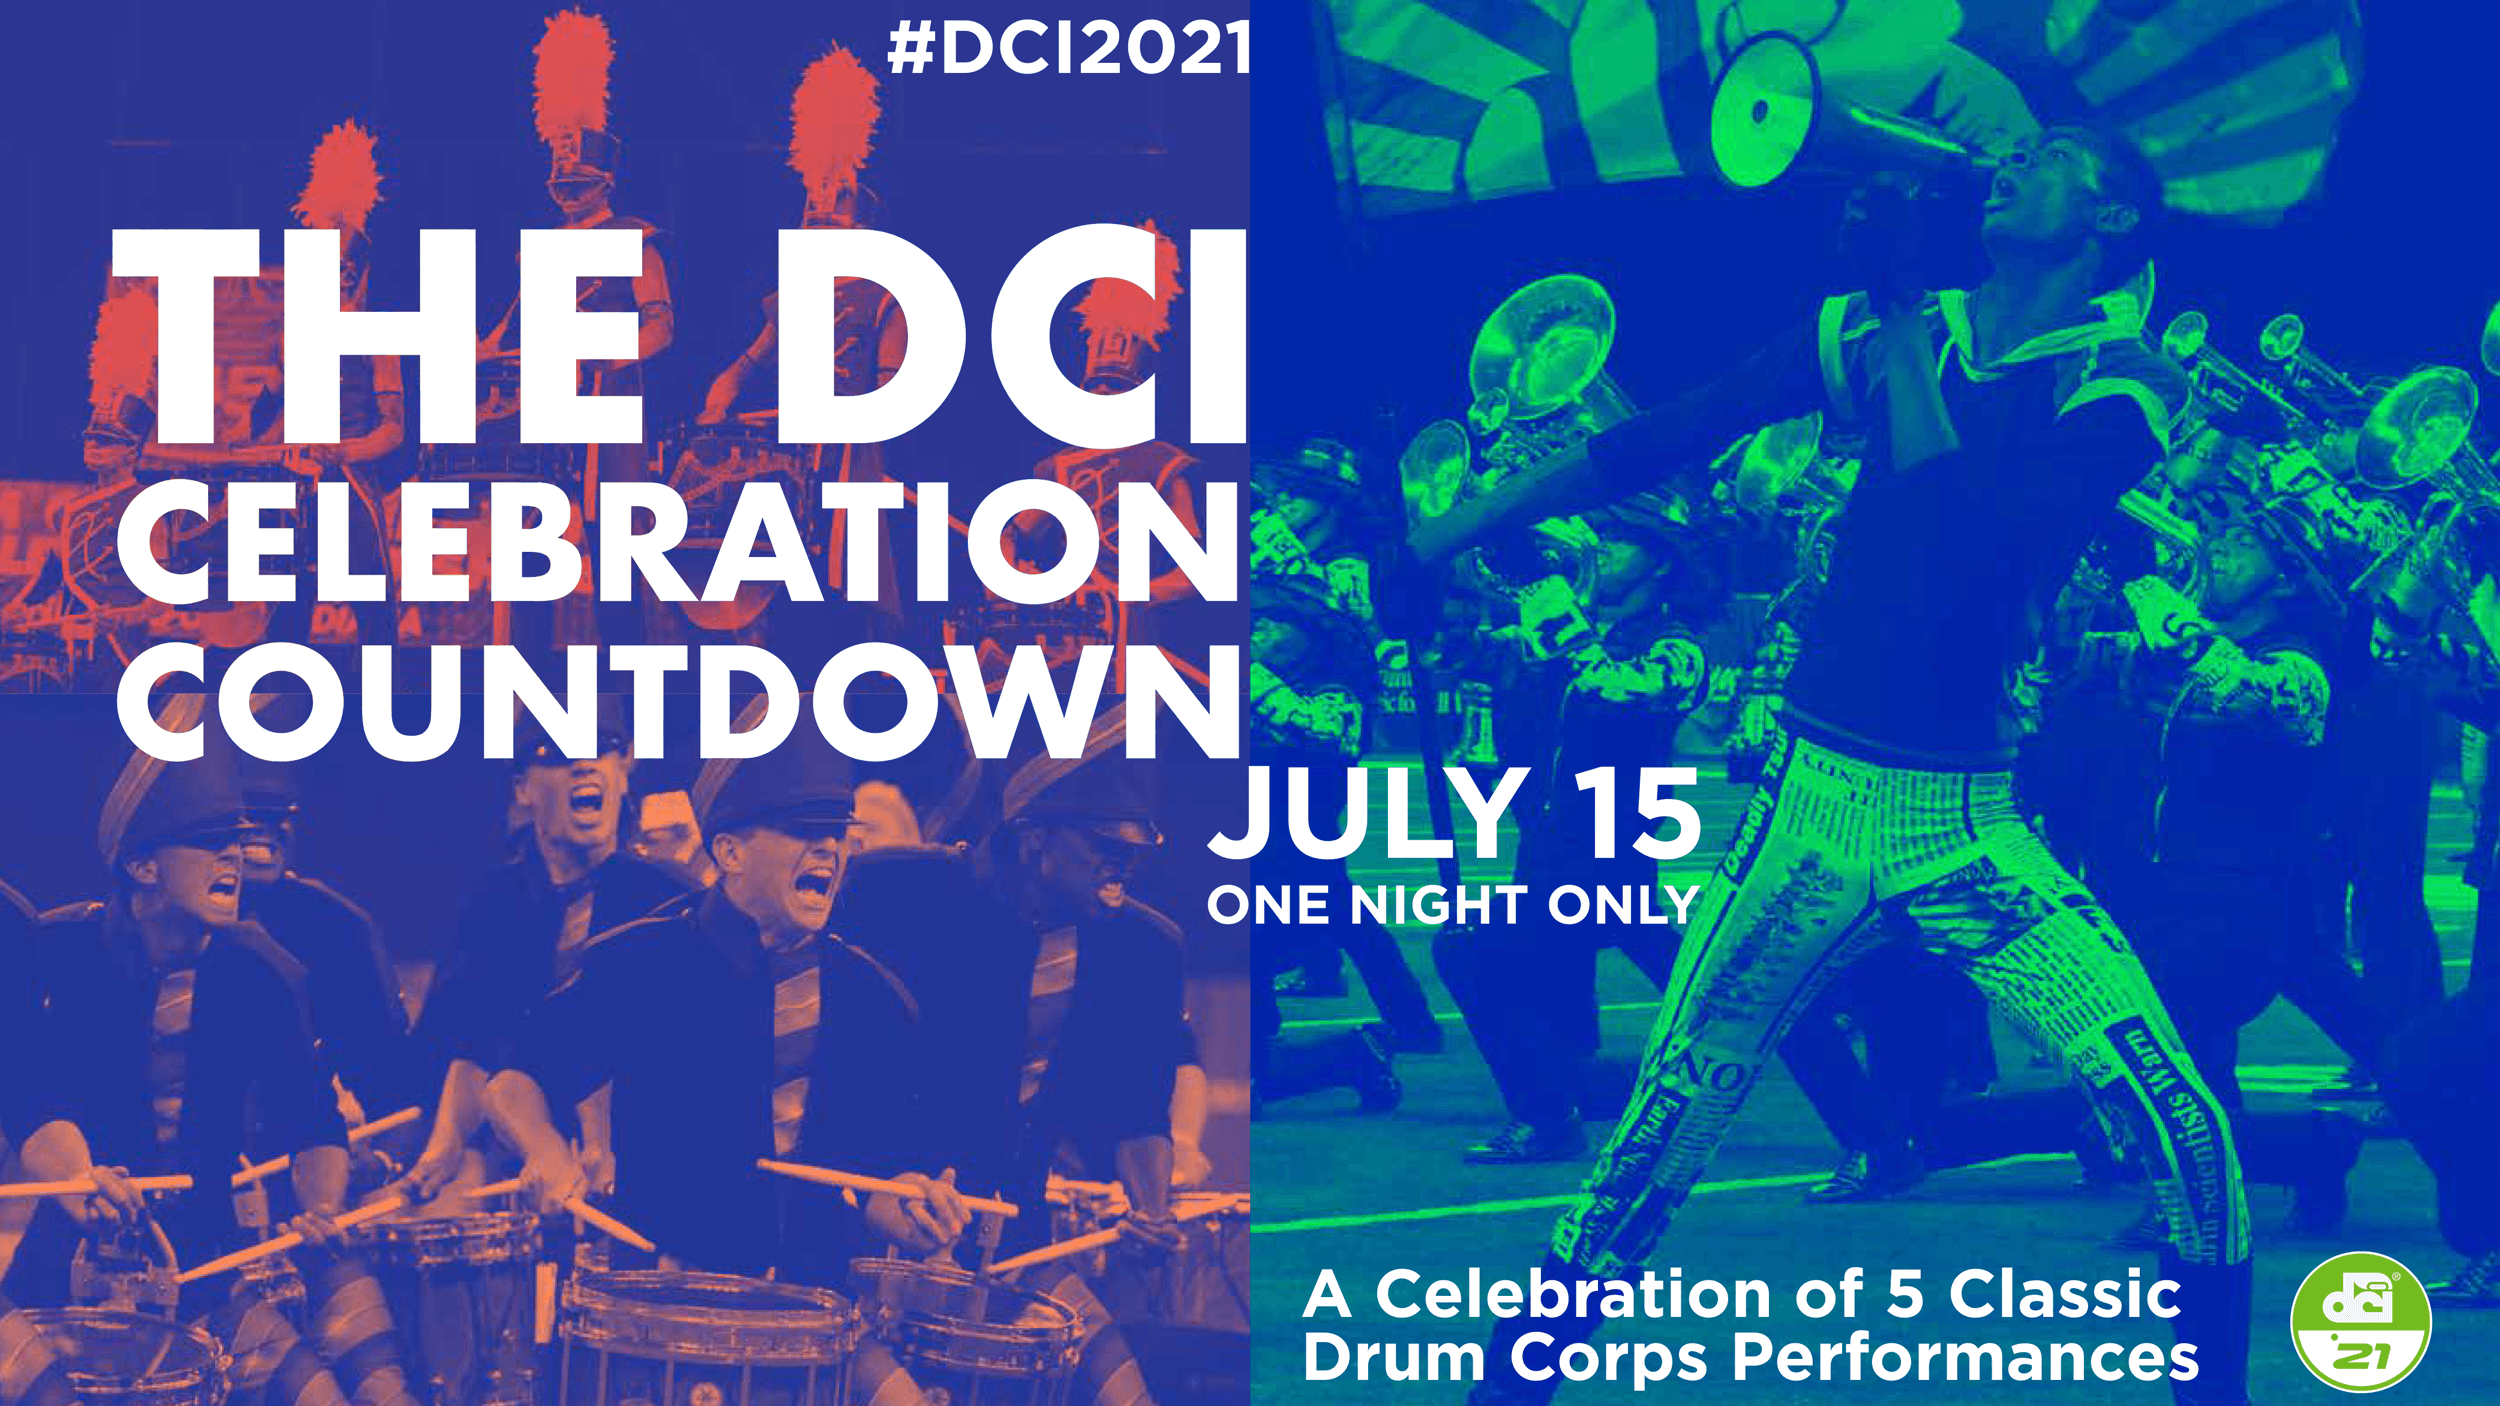 Drum Corps International will march back into cinemas on July 15